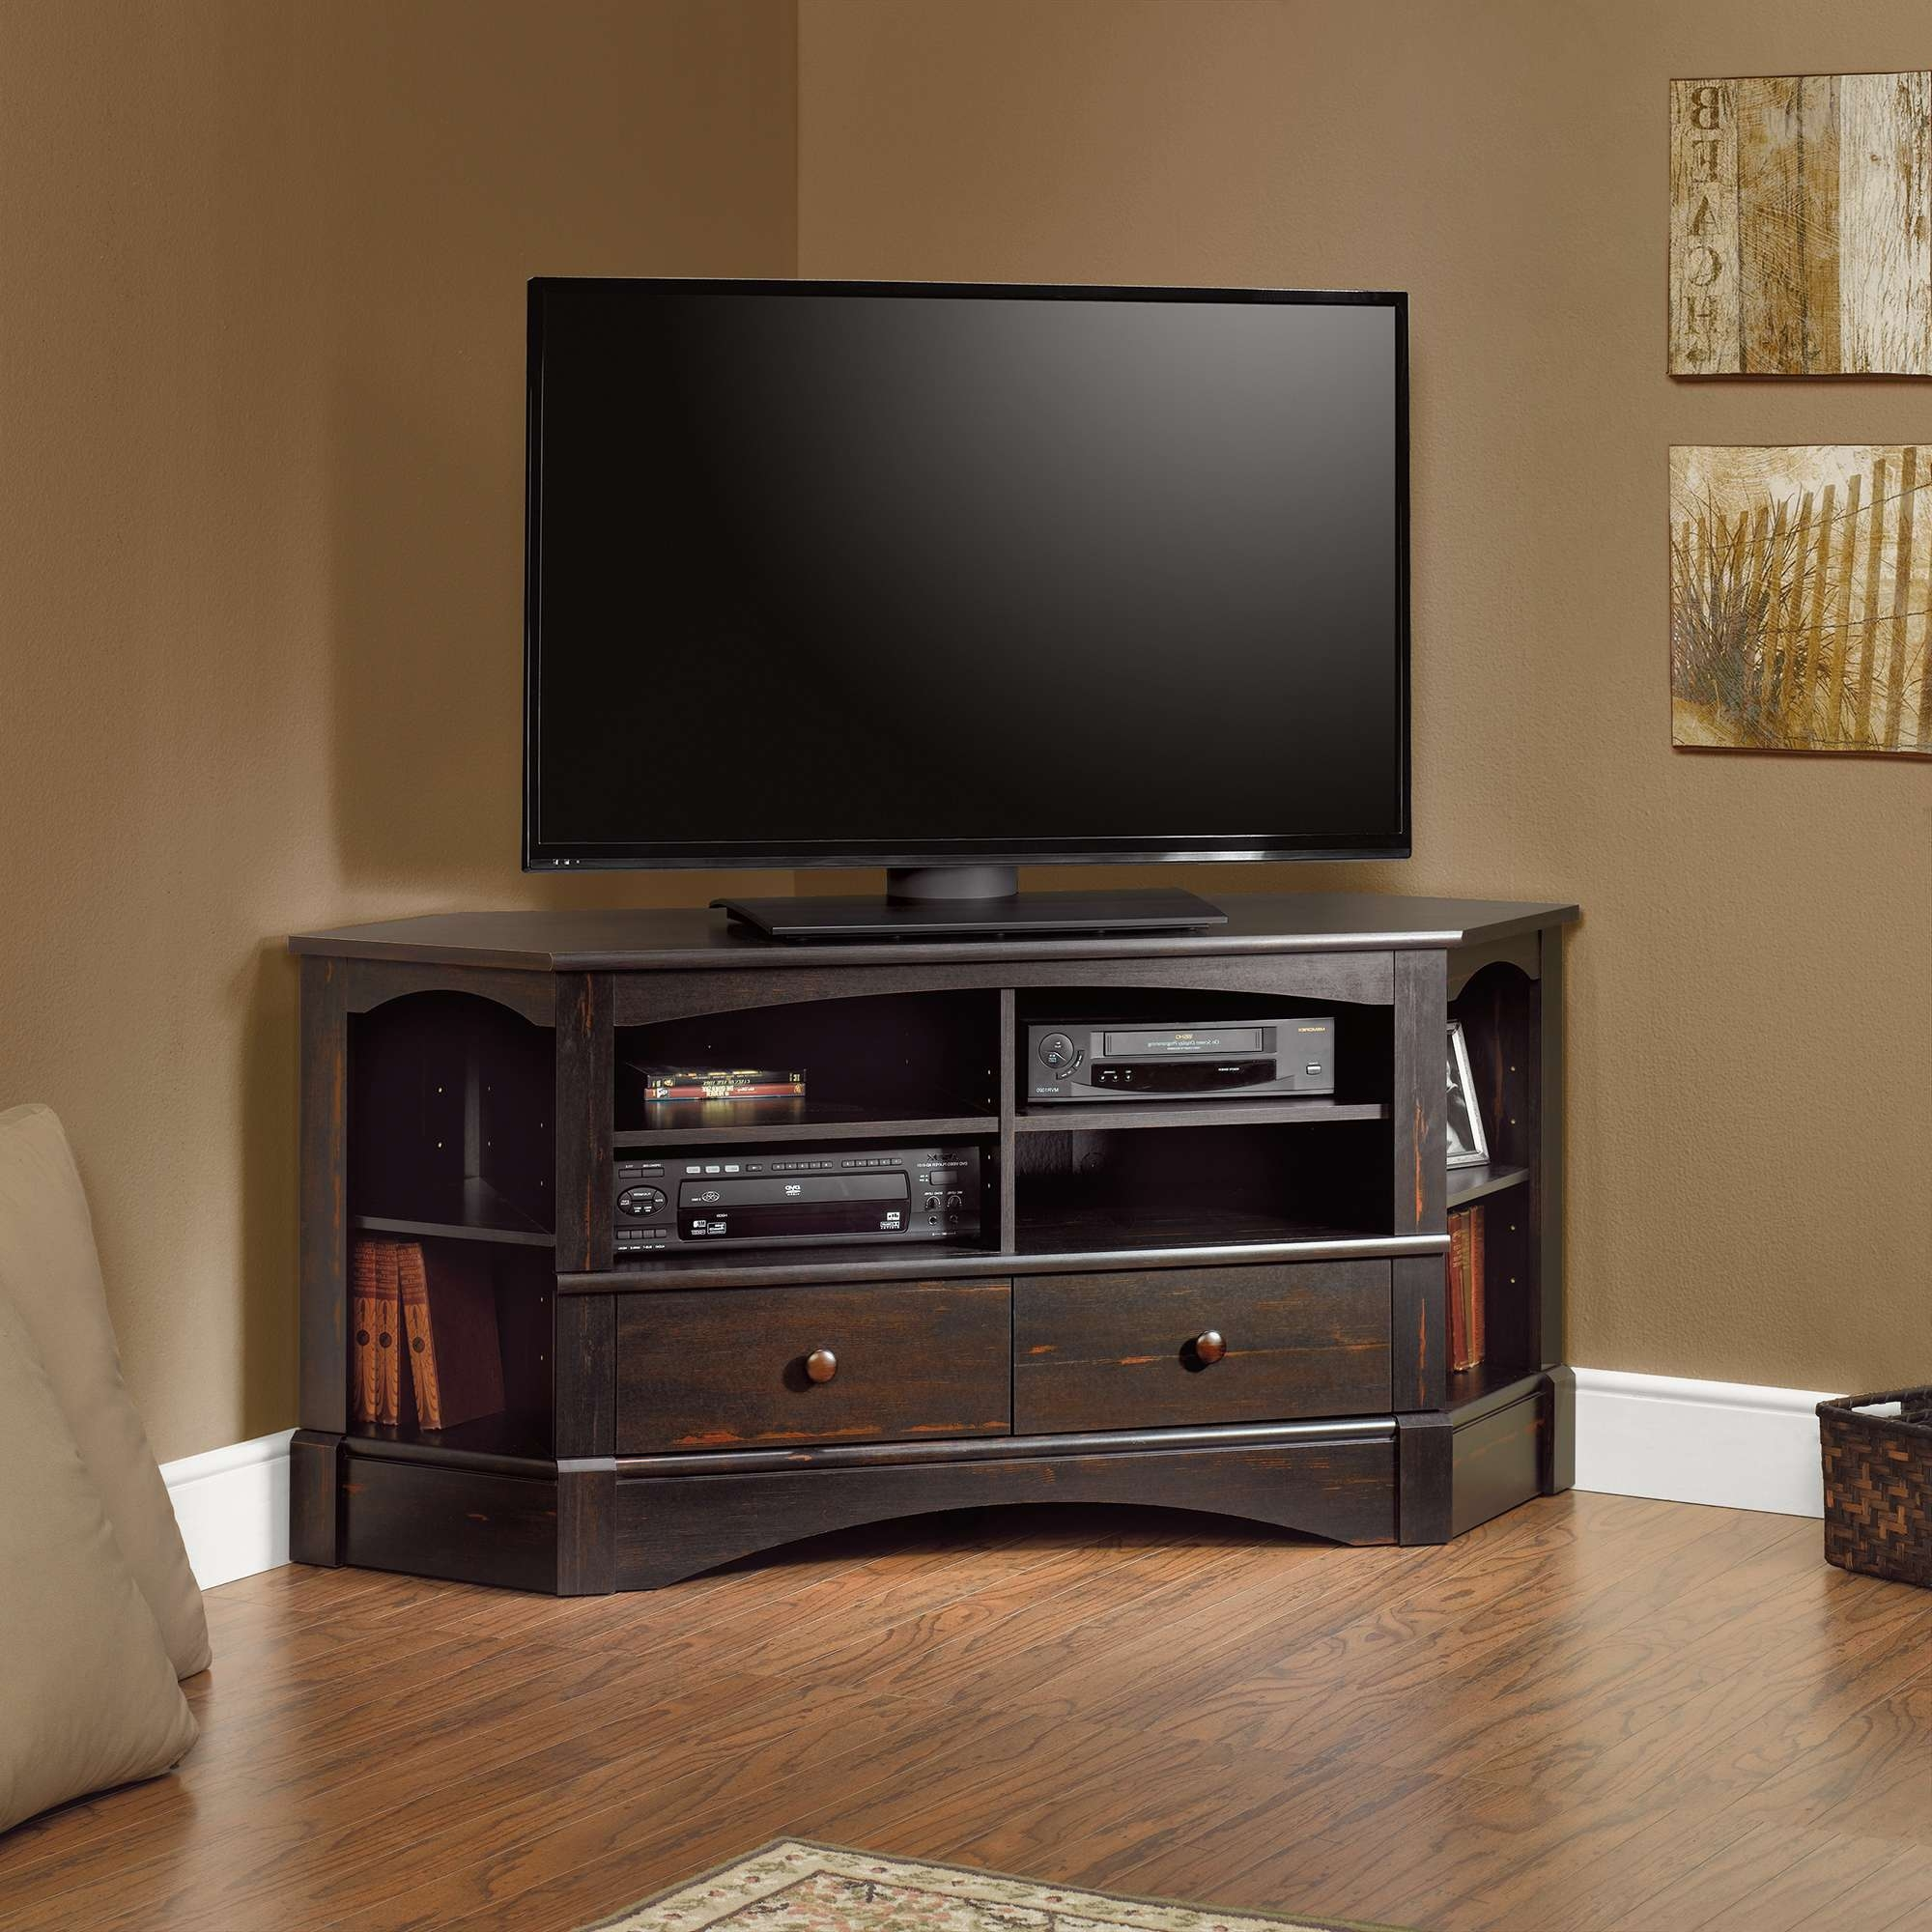 44 Inch Brown Wood Corner Tv Stand | Wood Corner Tv Stand, Corner Within Wooden Corner Tv Stands (View 1 of 15)